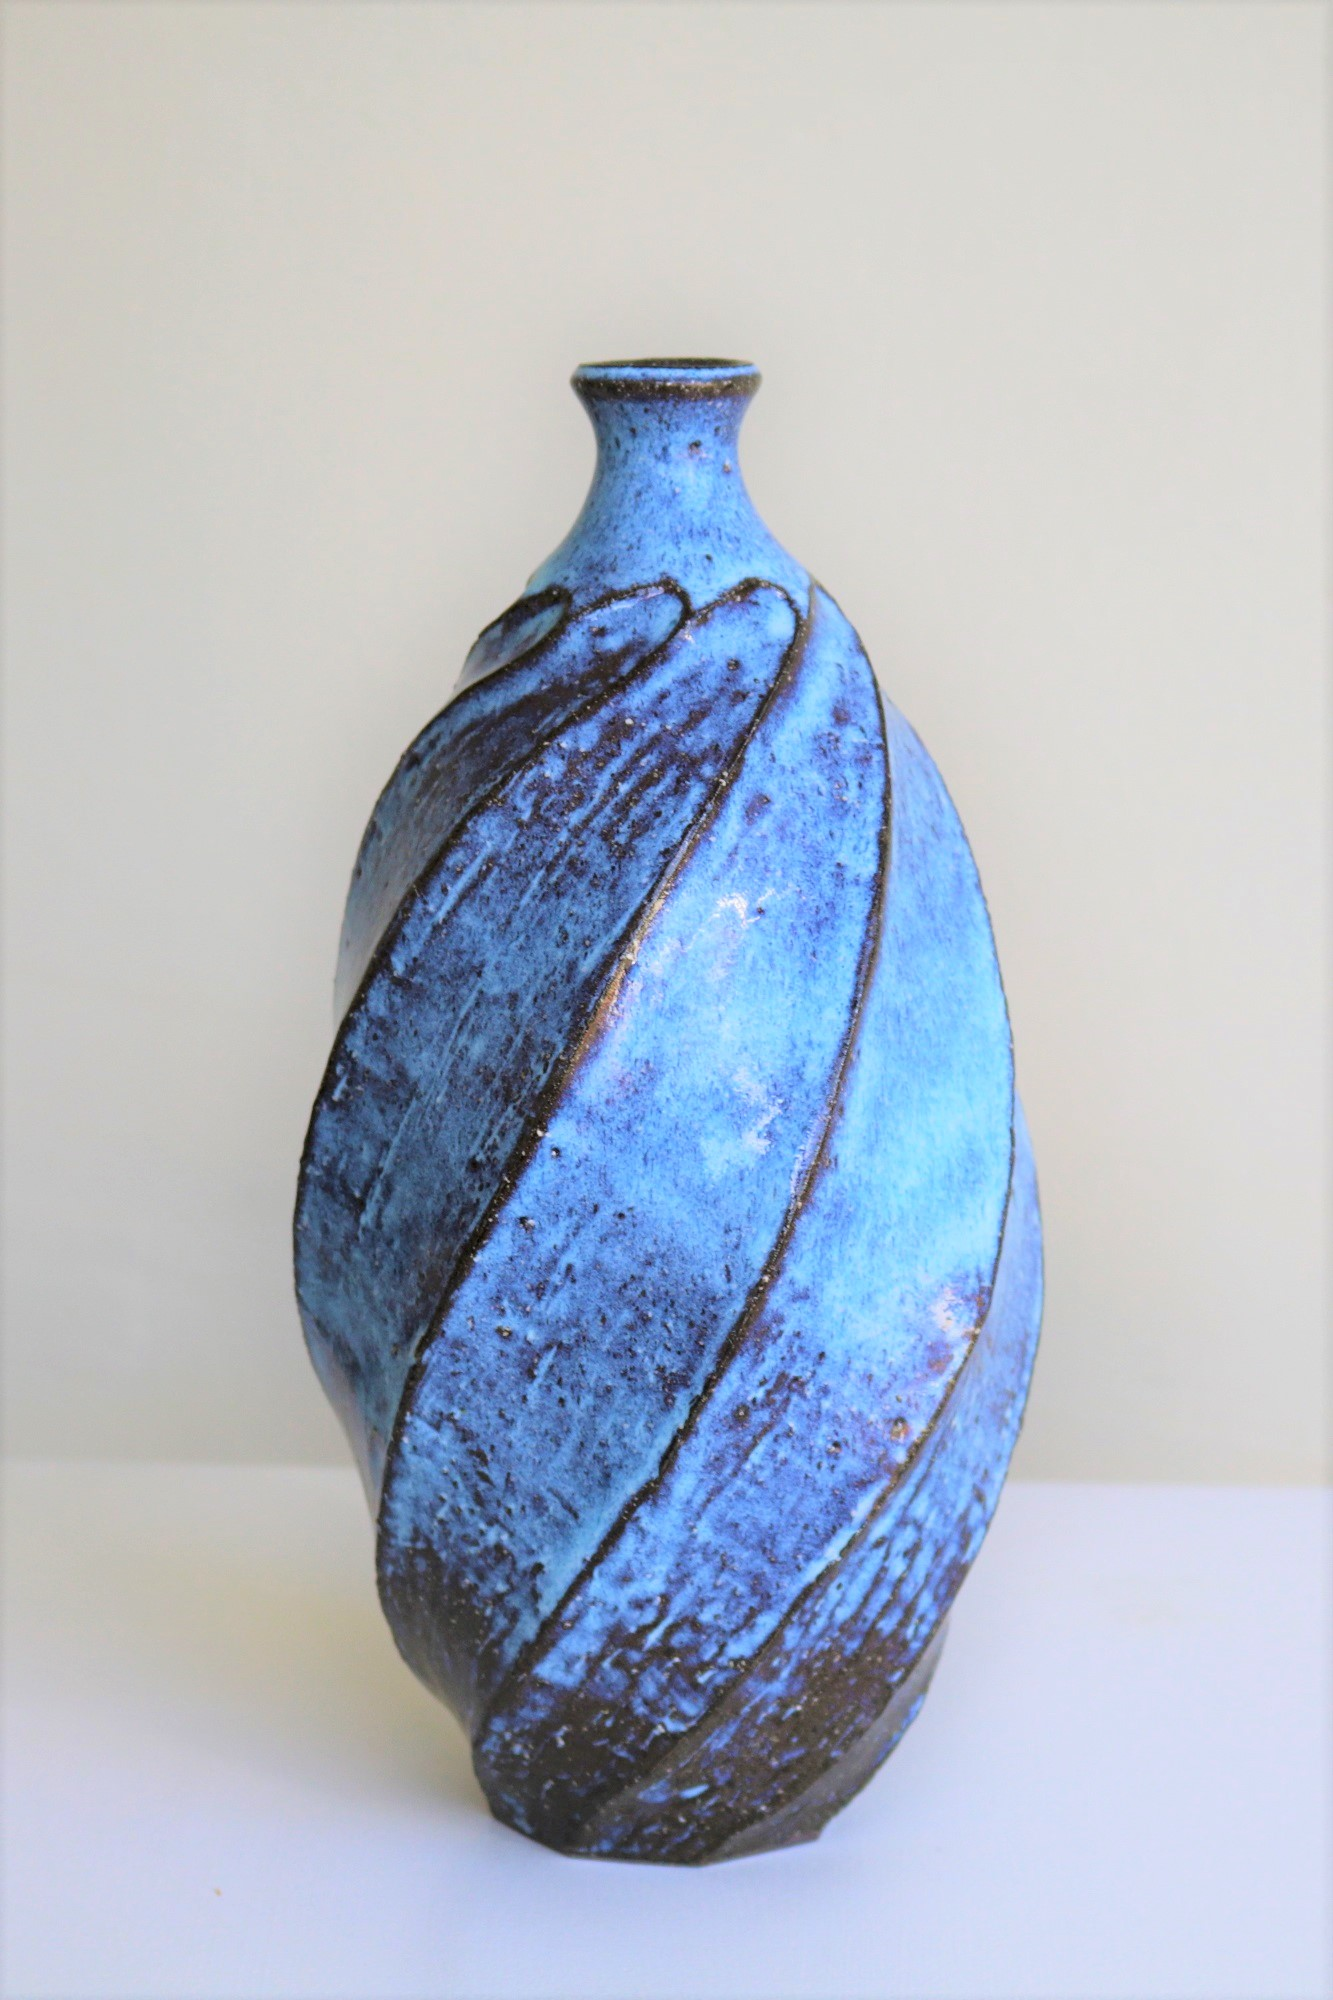 Terunobu Hirata,  Twist Facetted Bottle,  stoneware, pale moon glaze, H26cm, 2017 AVAILABLE